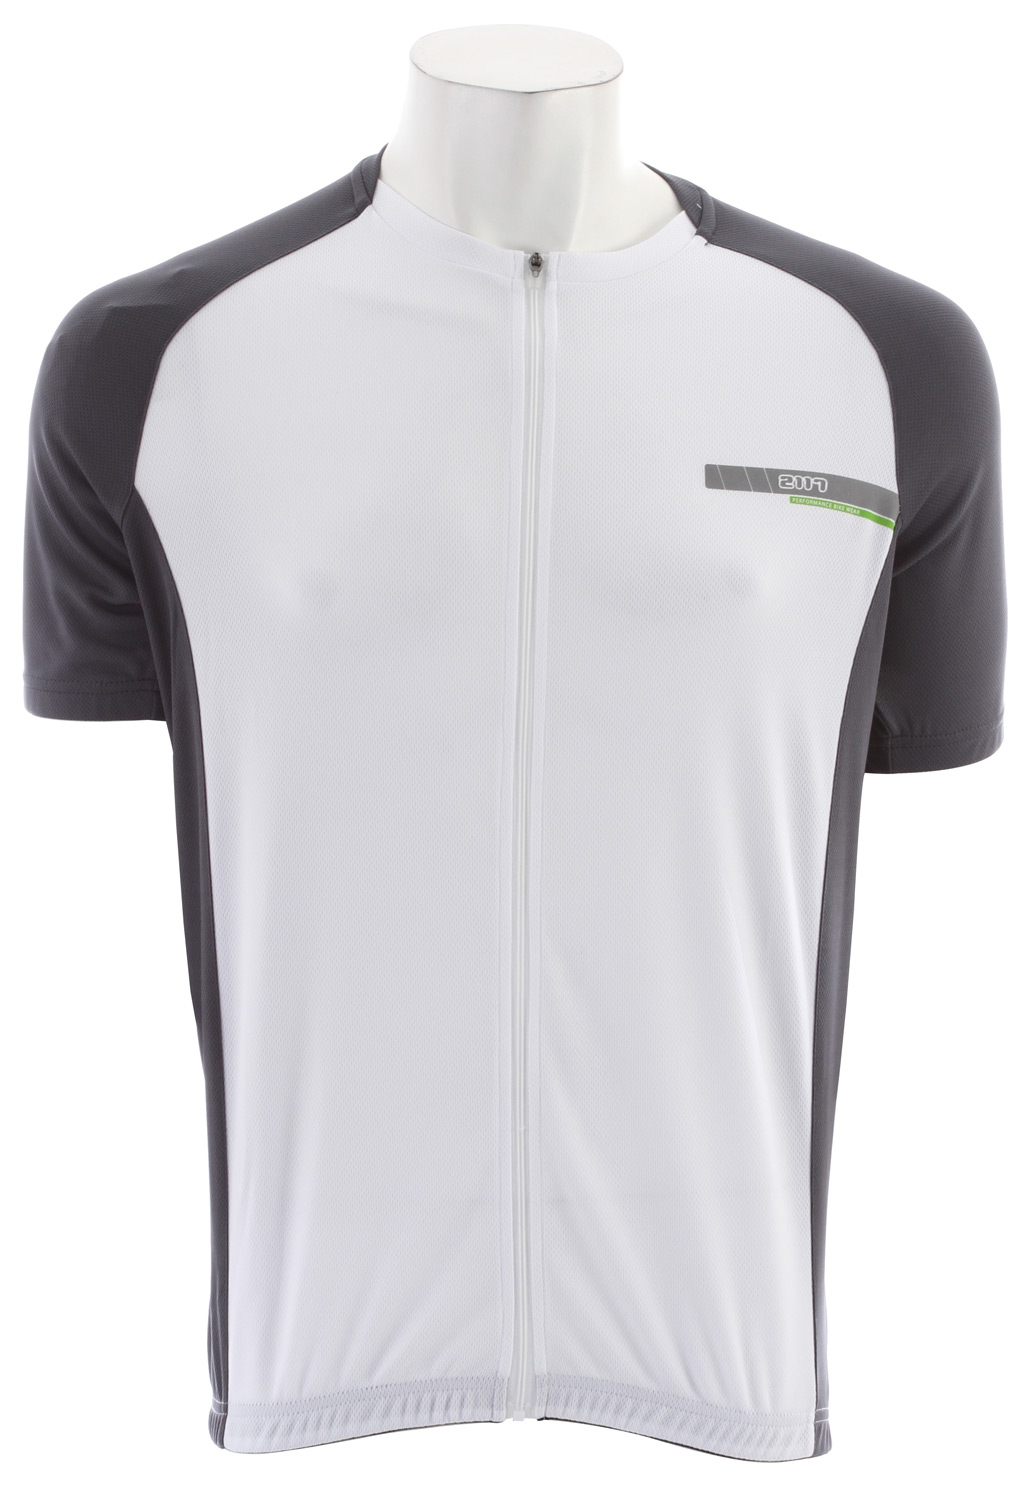 Fitness 2117 Of Sweden Falun Cycling Top White - $15.95